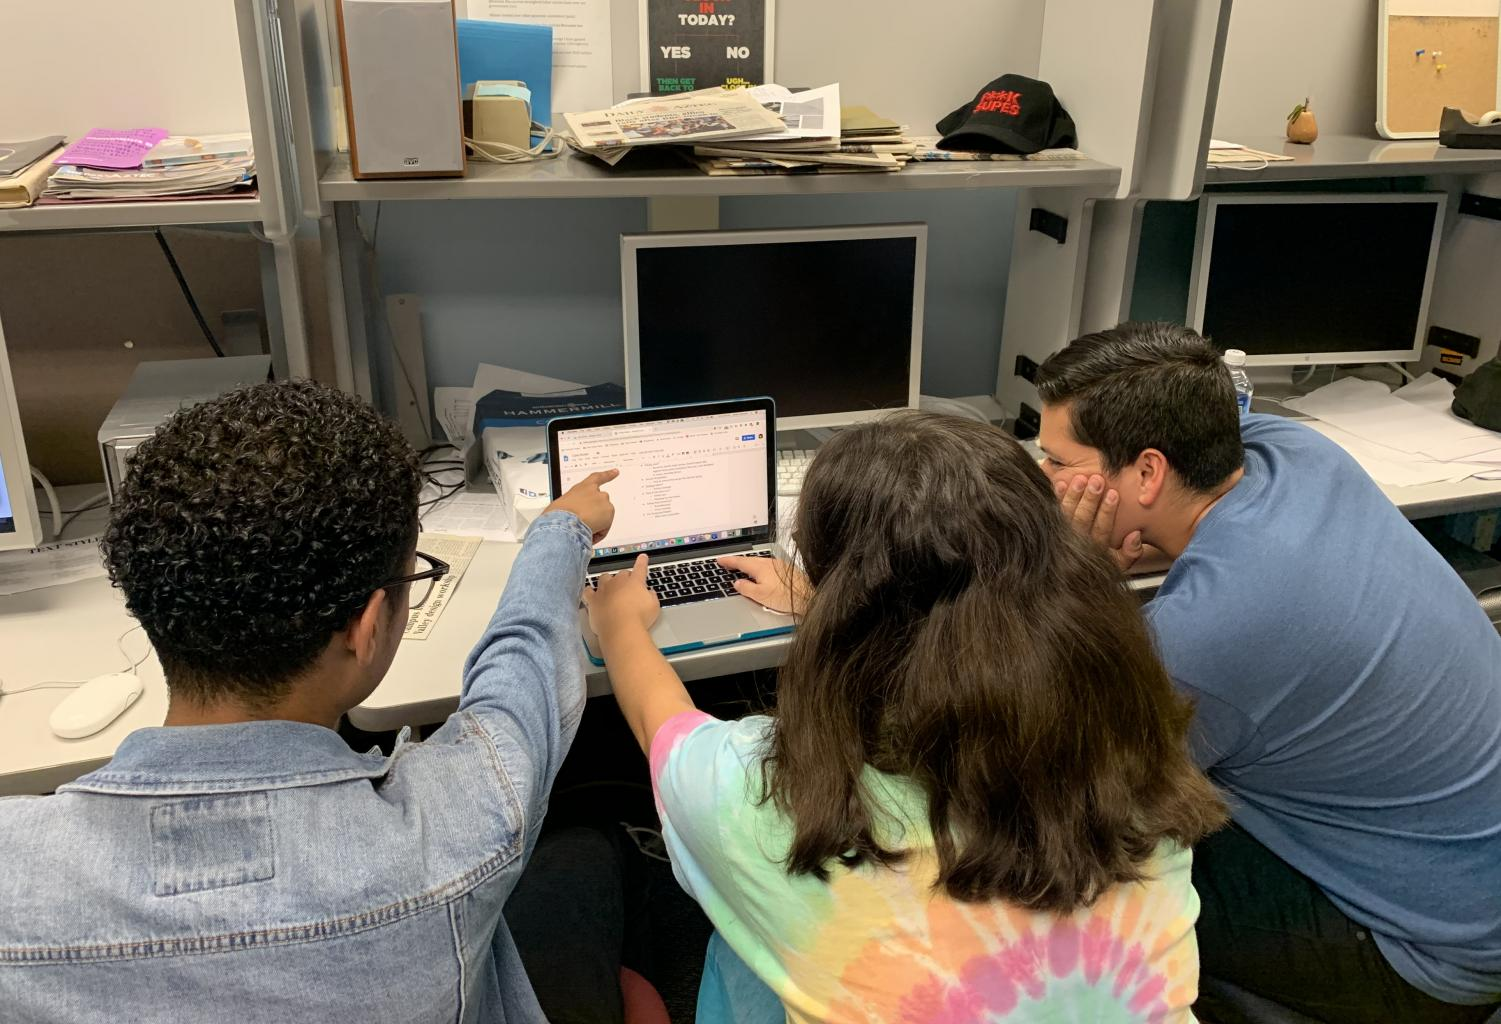 Students working together on a group project.